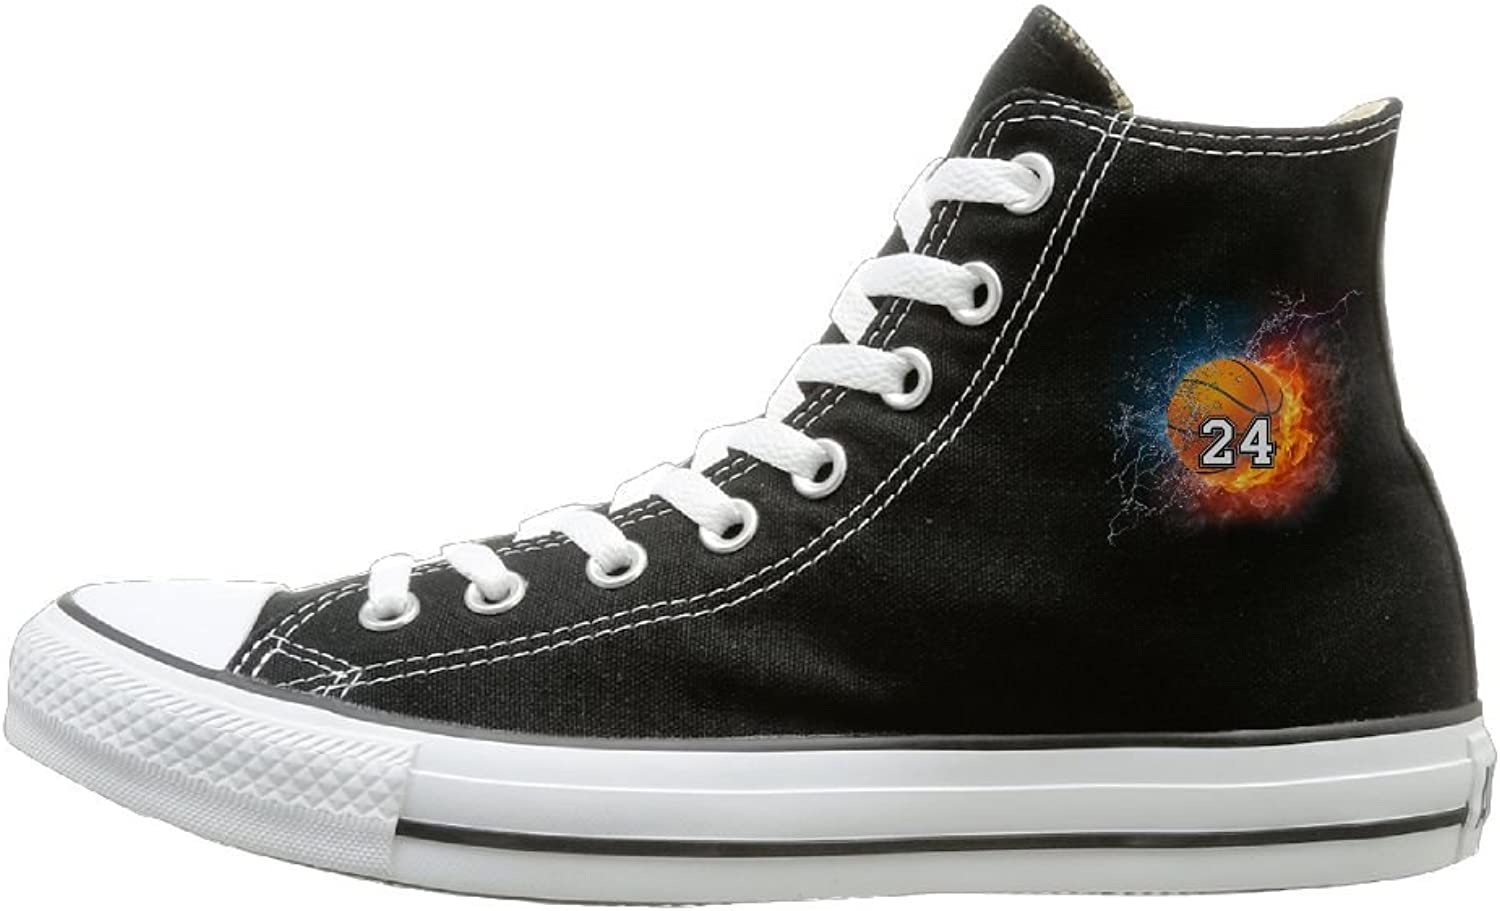 Classic High-Top Canvas Sneakers Water Fire Basketball 24 Casual Sneakers Canvas shoes With Rubber Sole